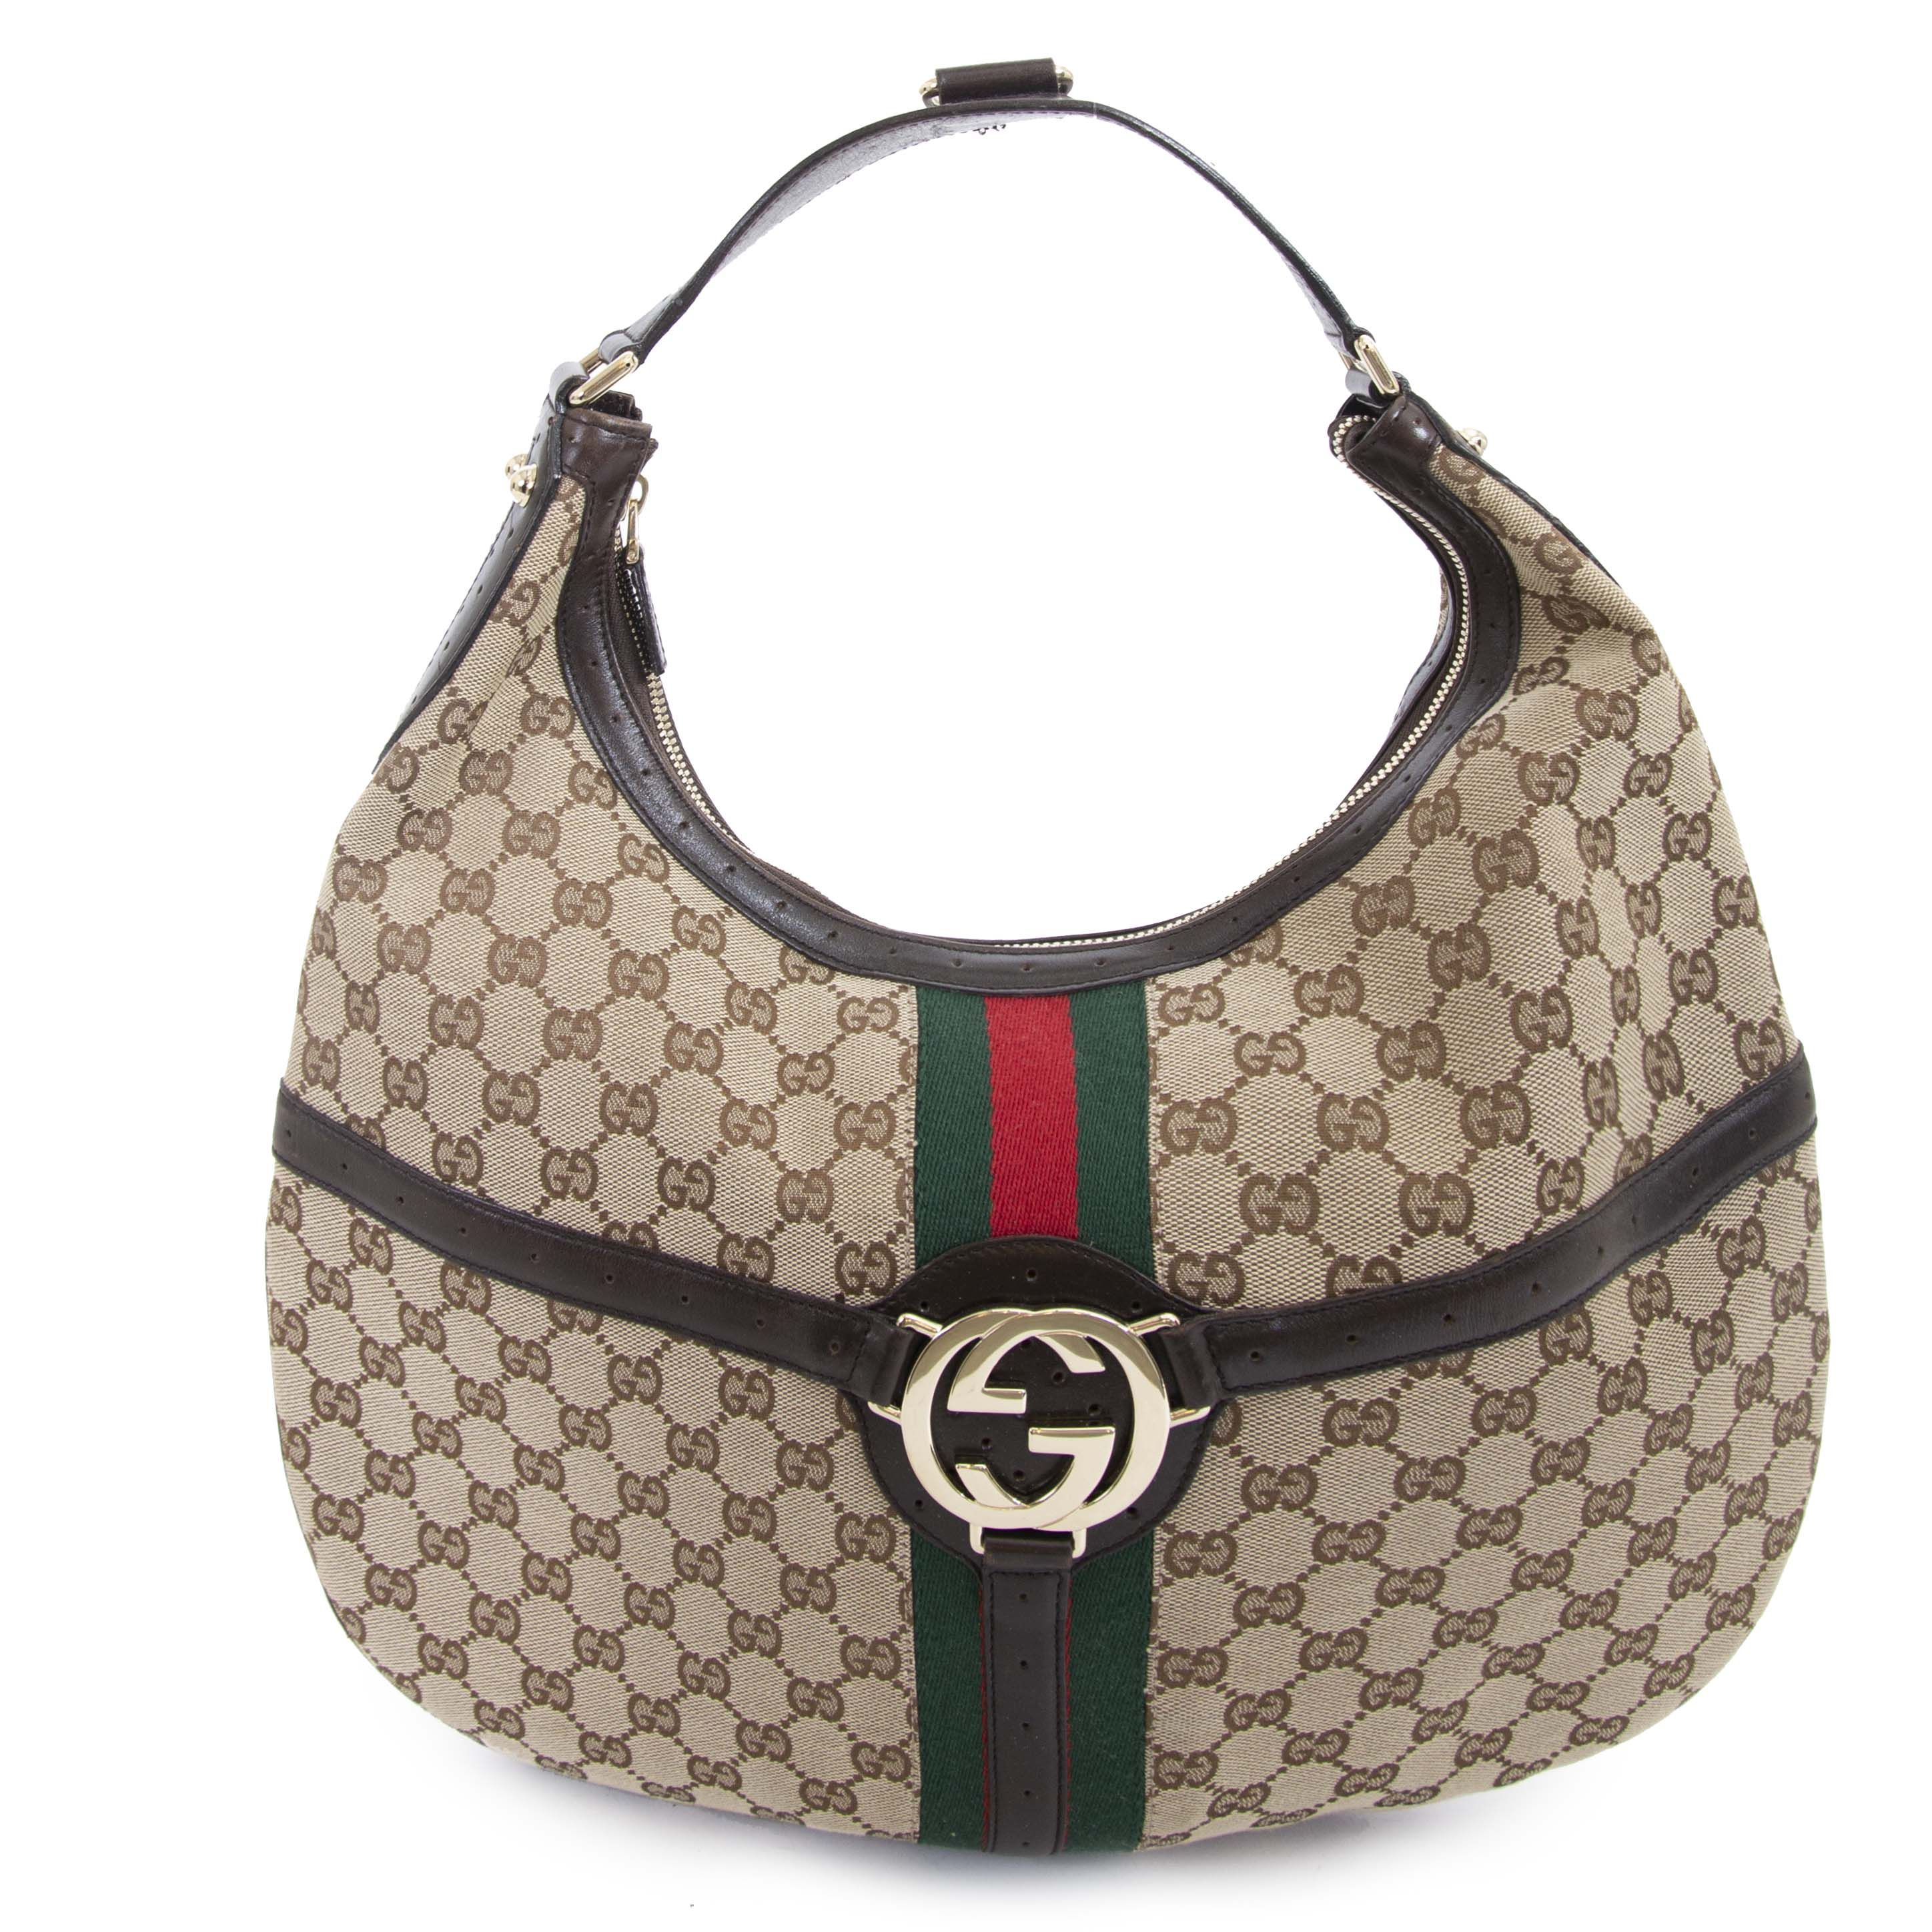 ee4fbd806 Labellov Gucci Canvas Web GG Reins Hobo Brown Bag ○ Buy and Sell Authentic  Luxury